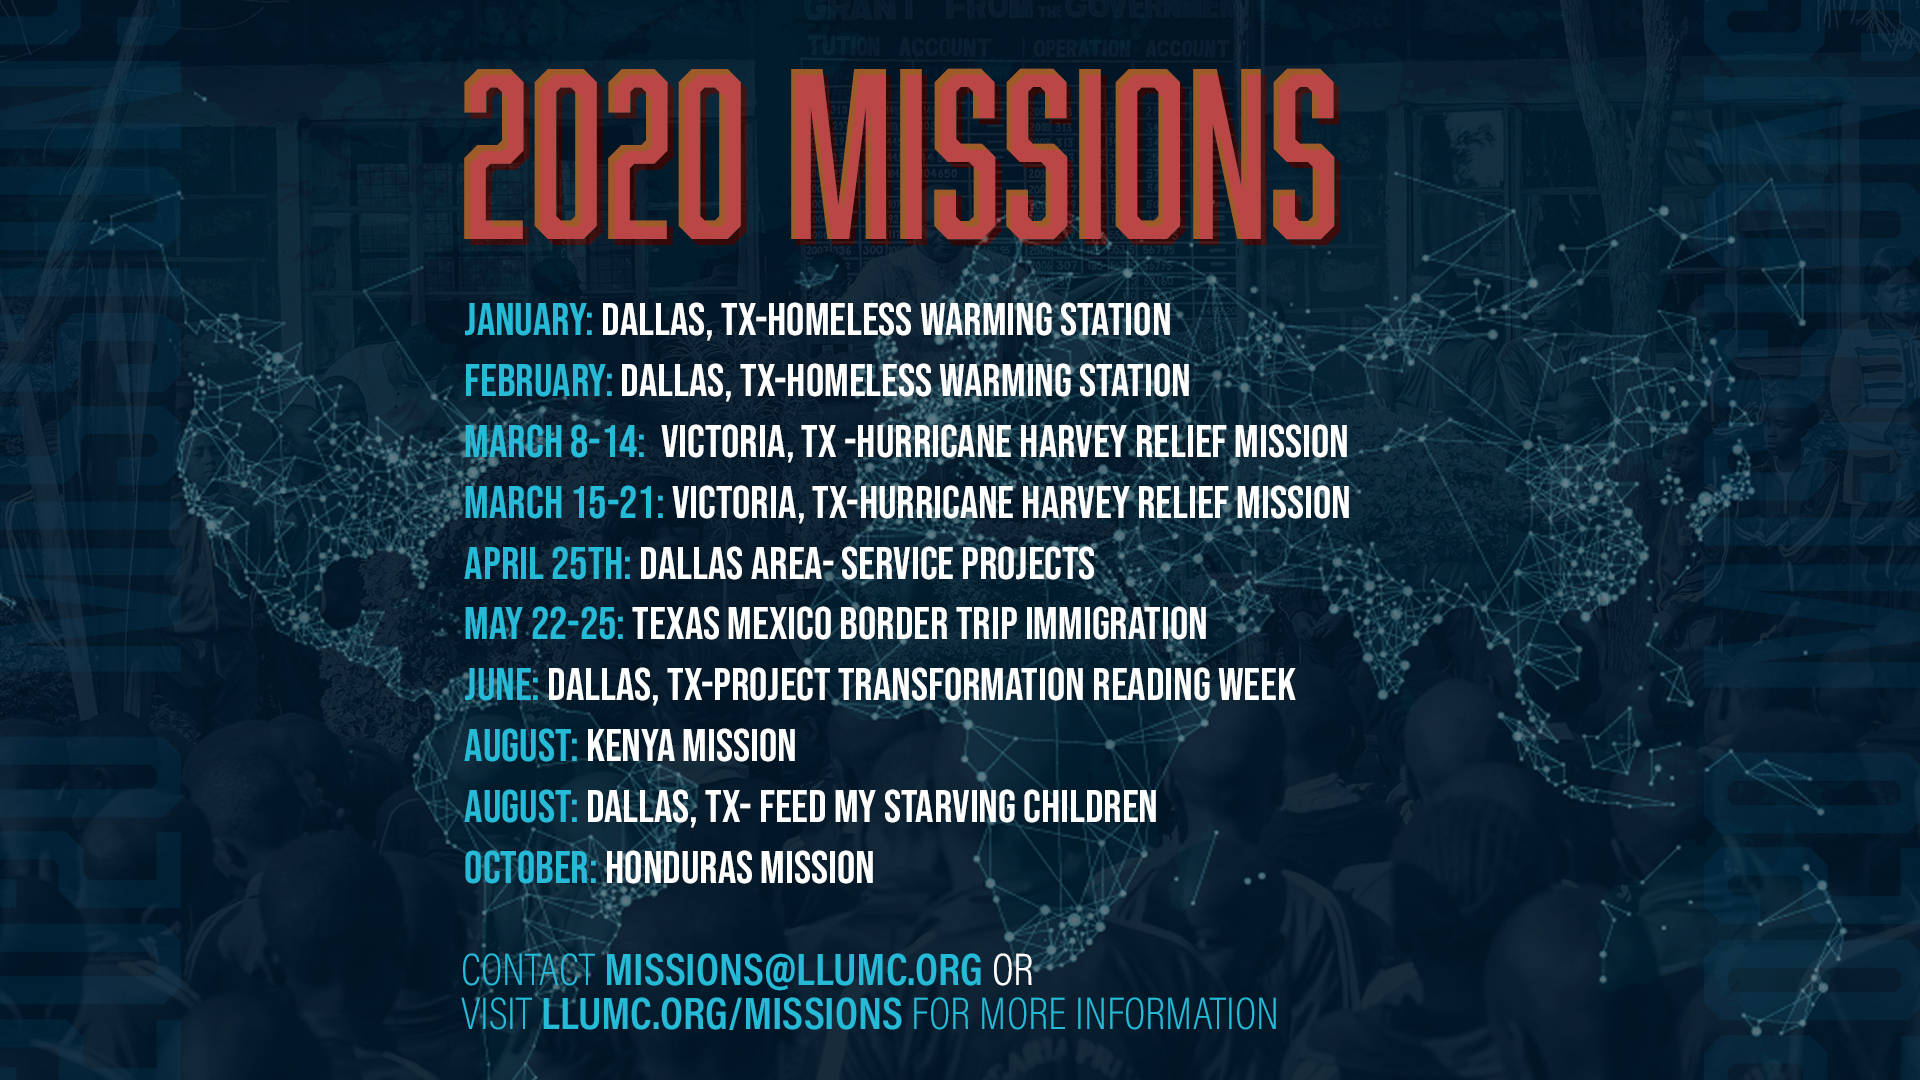 720missions